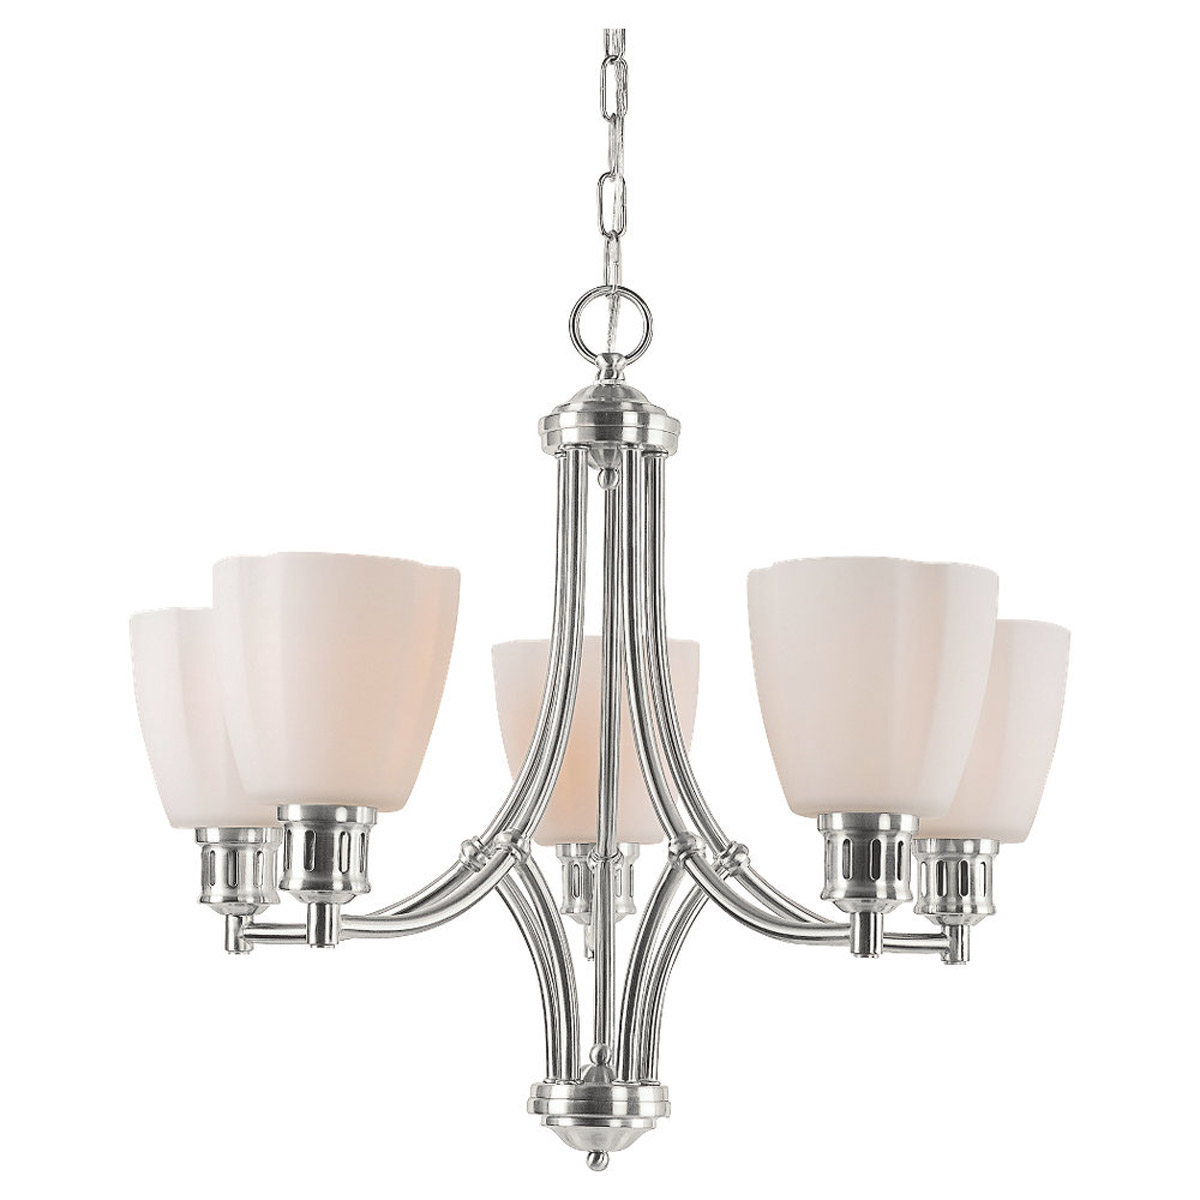 Sea Gull Lighting Century 5 Light Chandelier in Brushed Nickel 31475-962